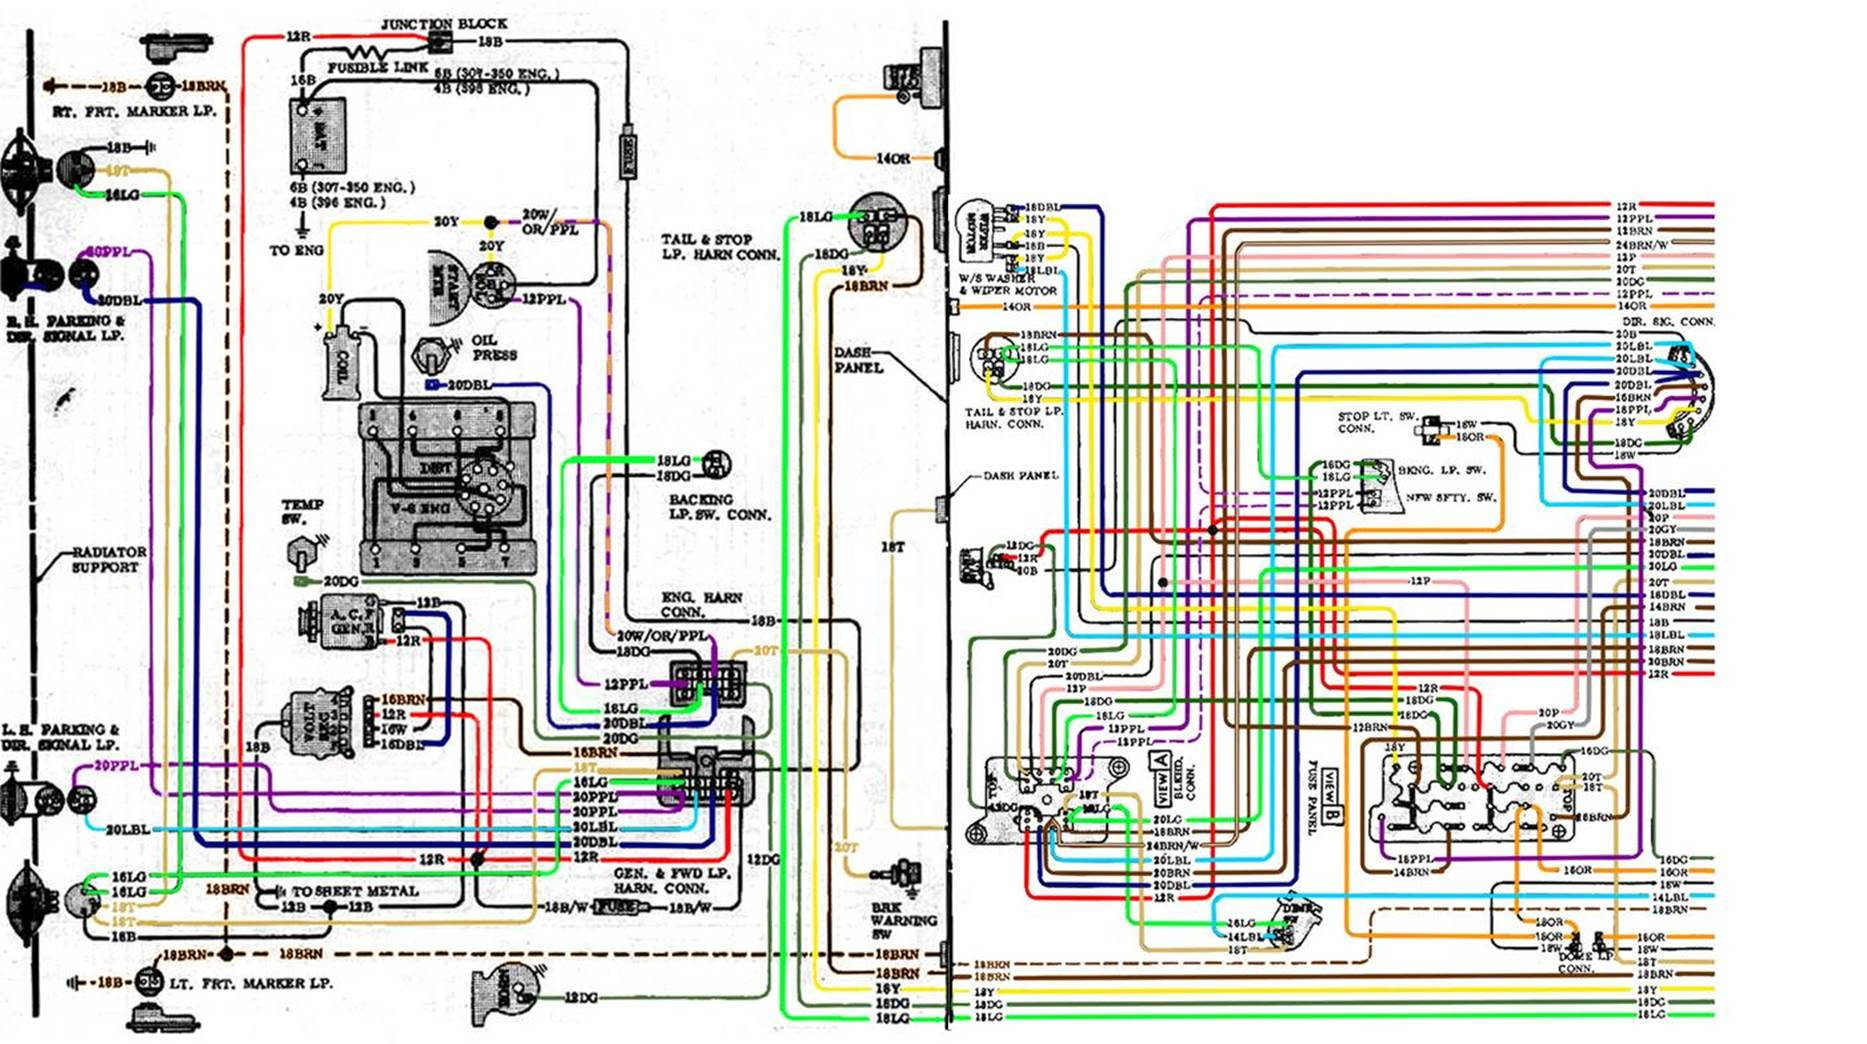 image002 67 72 chevy wiring diagram 68 Chevelle Wiring at webbmarketing.co